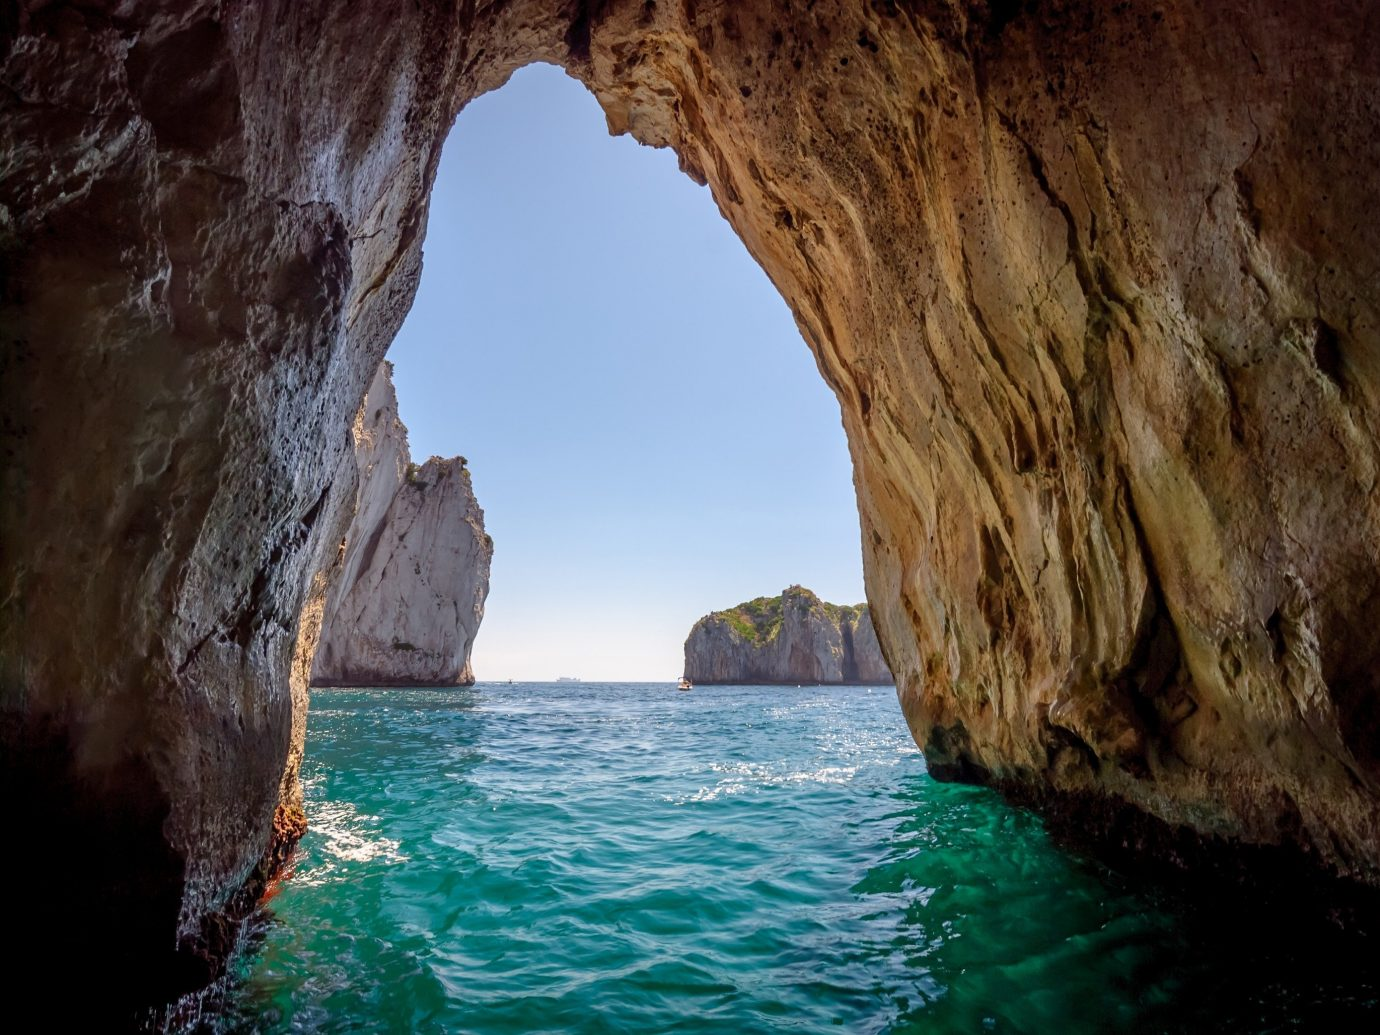 Trip Ideas water outdoor rock Nature sea cave geographical feature landform cave mountain natural arch cliff Sea terrain formation Coast wadi distance day